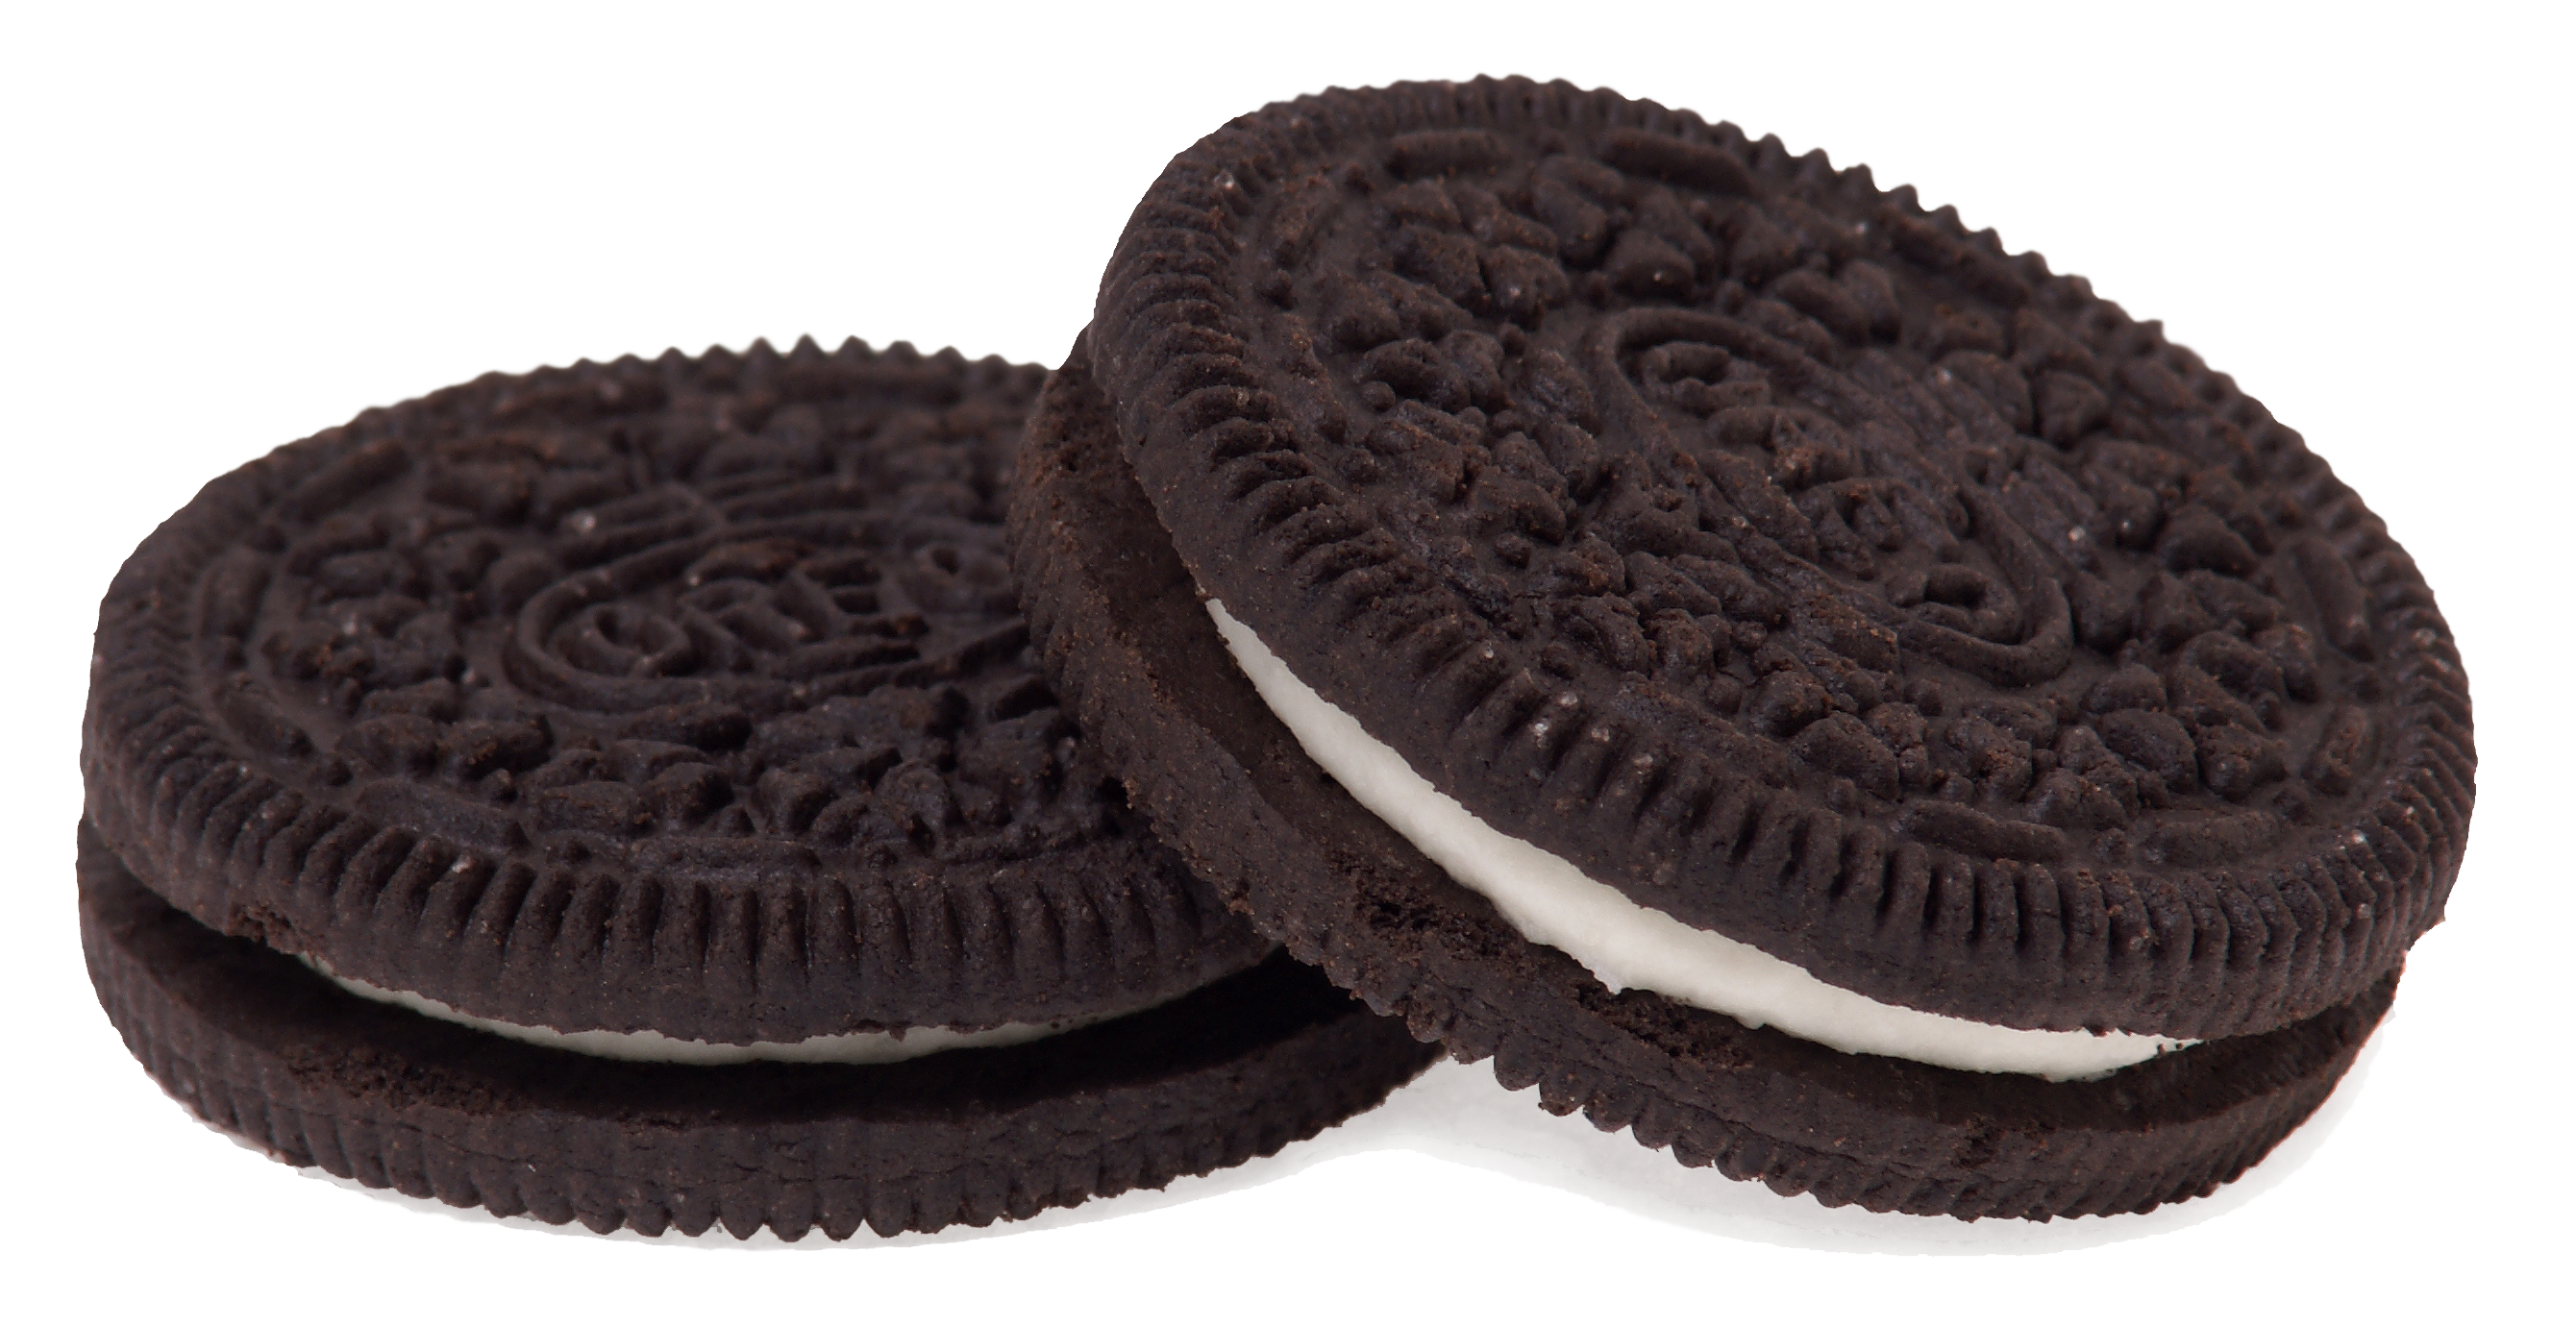 Oreo Cookie PNG Image.